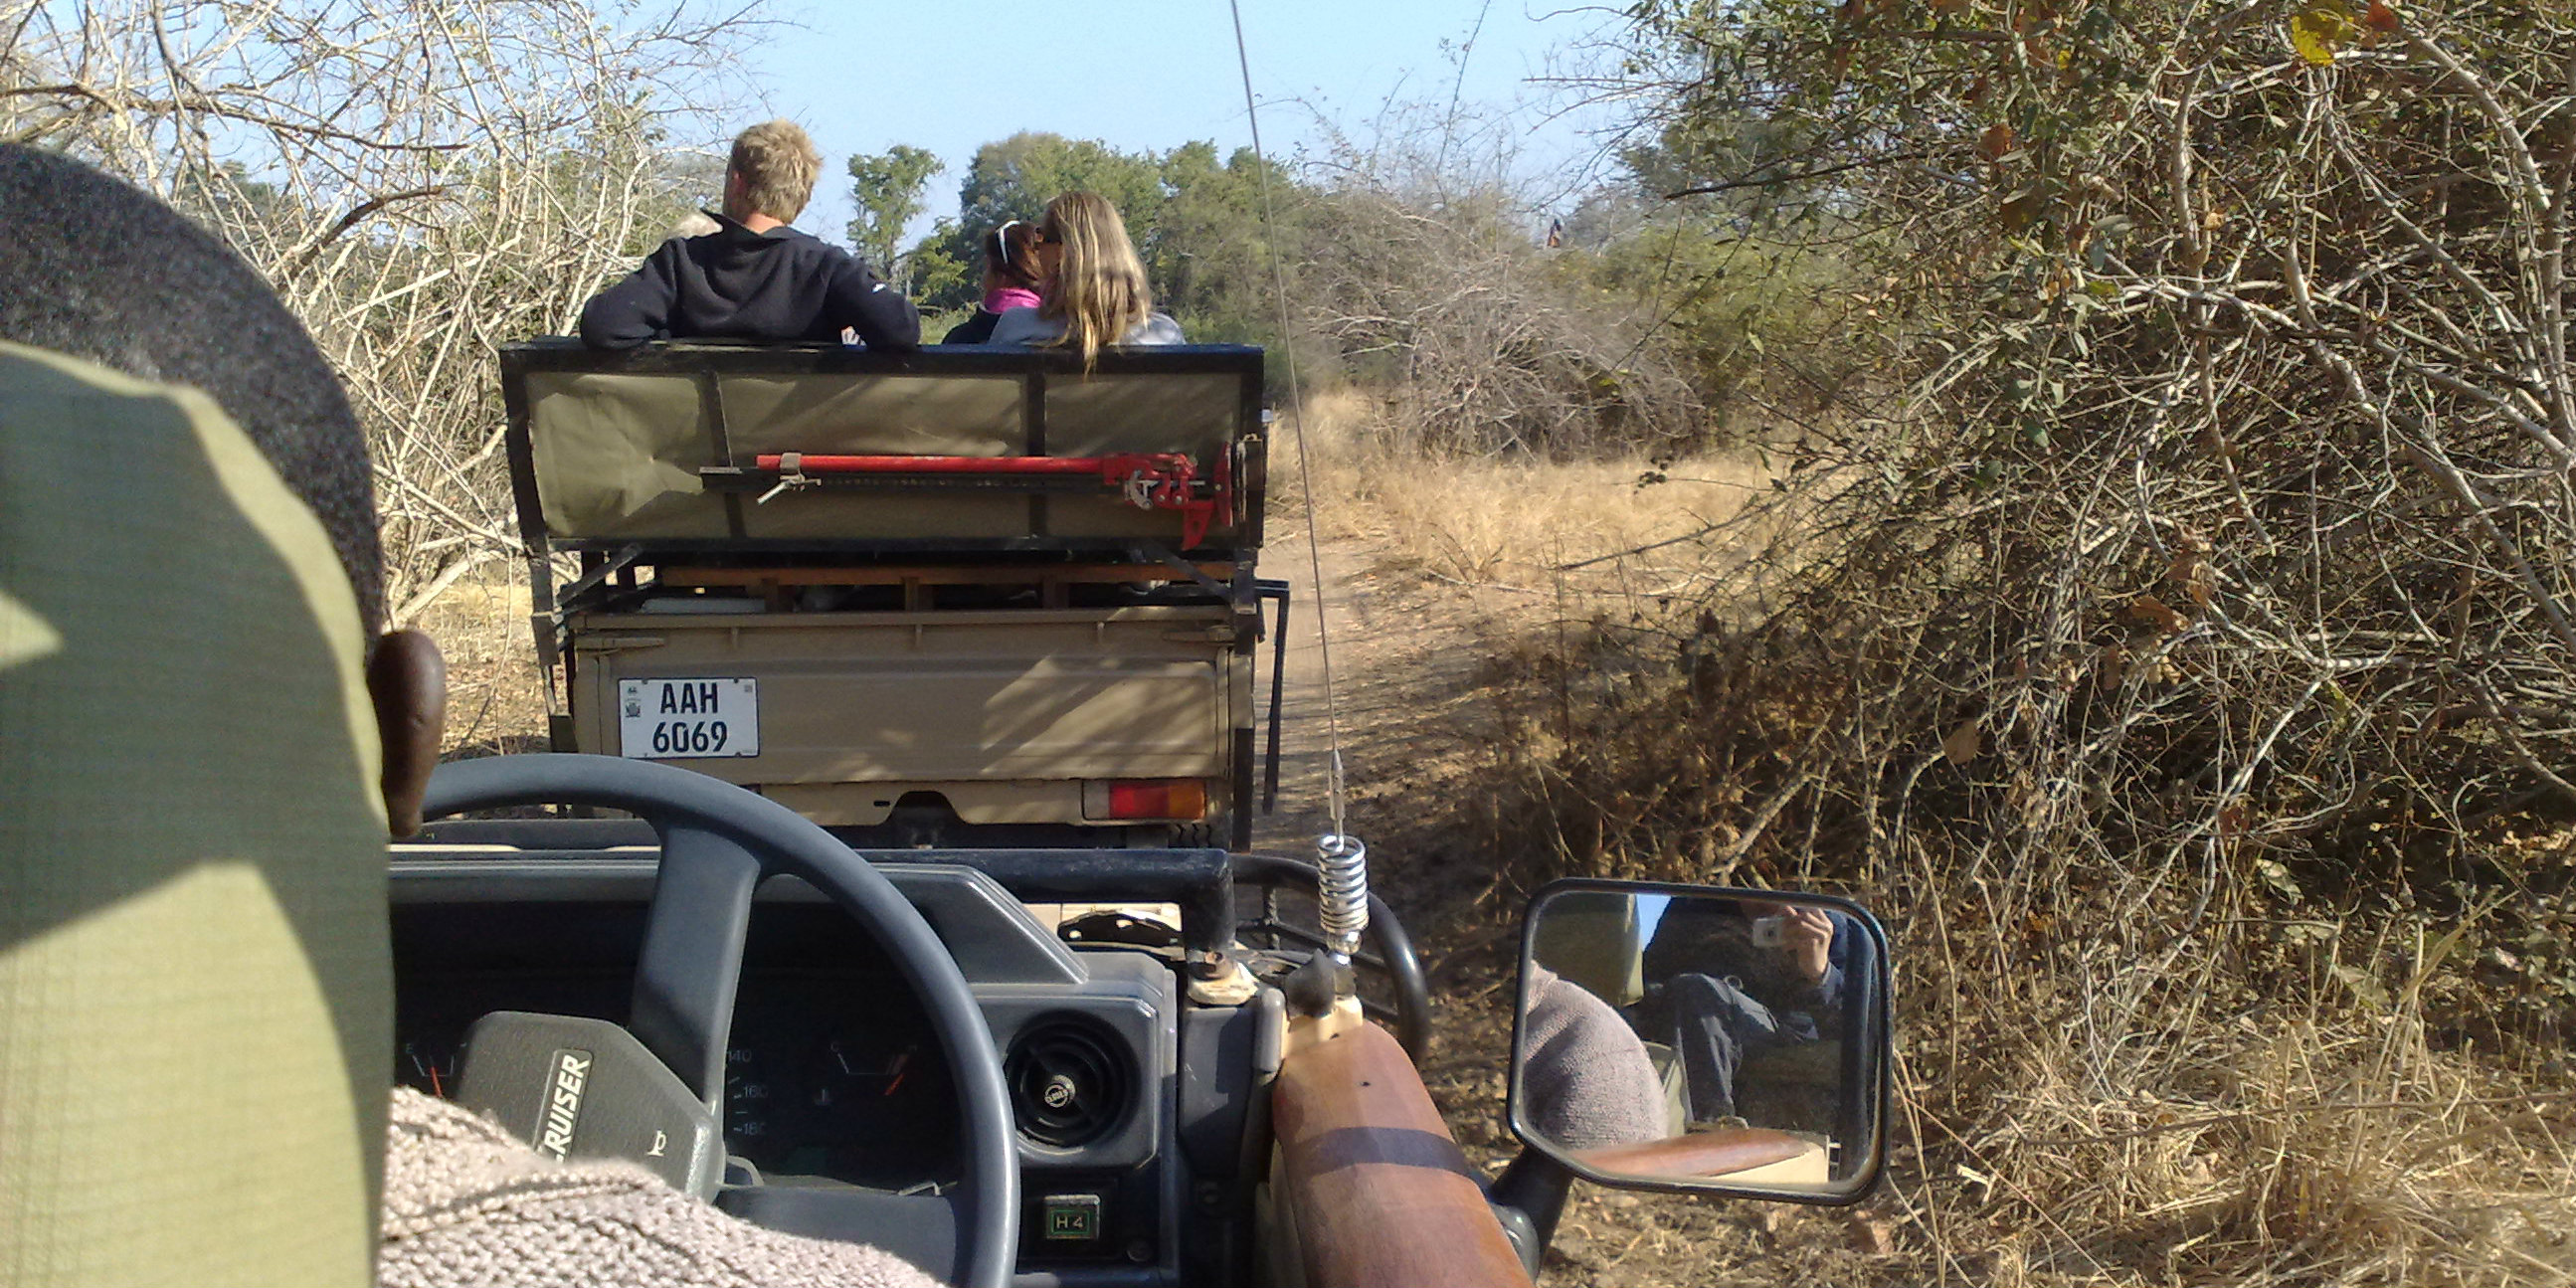 A group enjoys a Zambia safari.